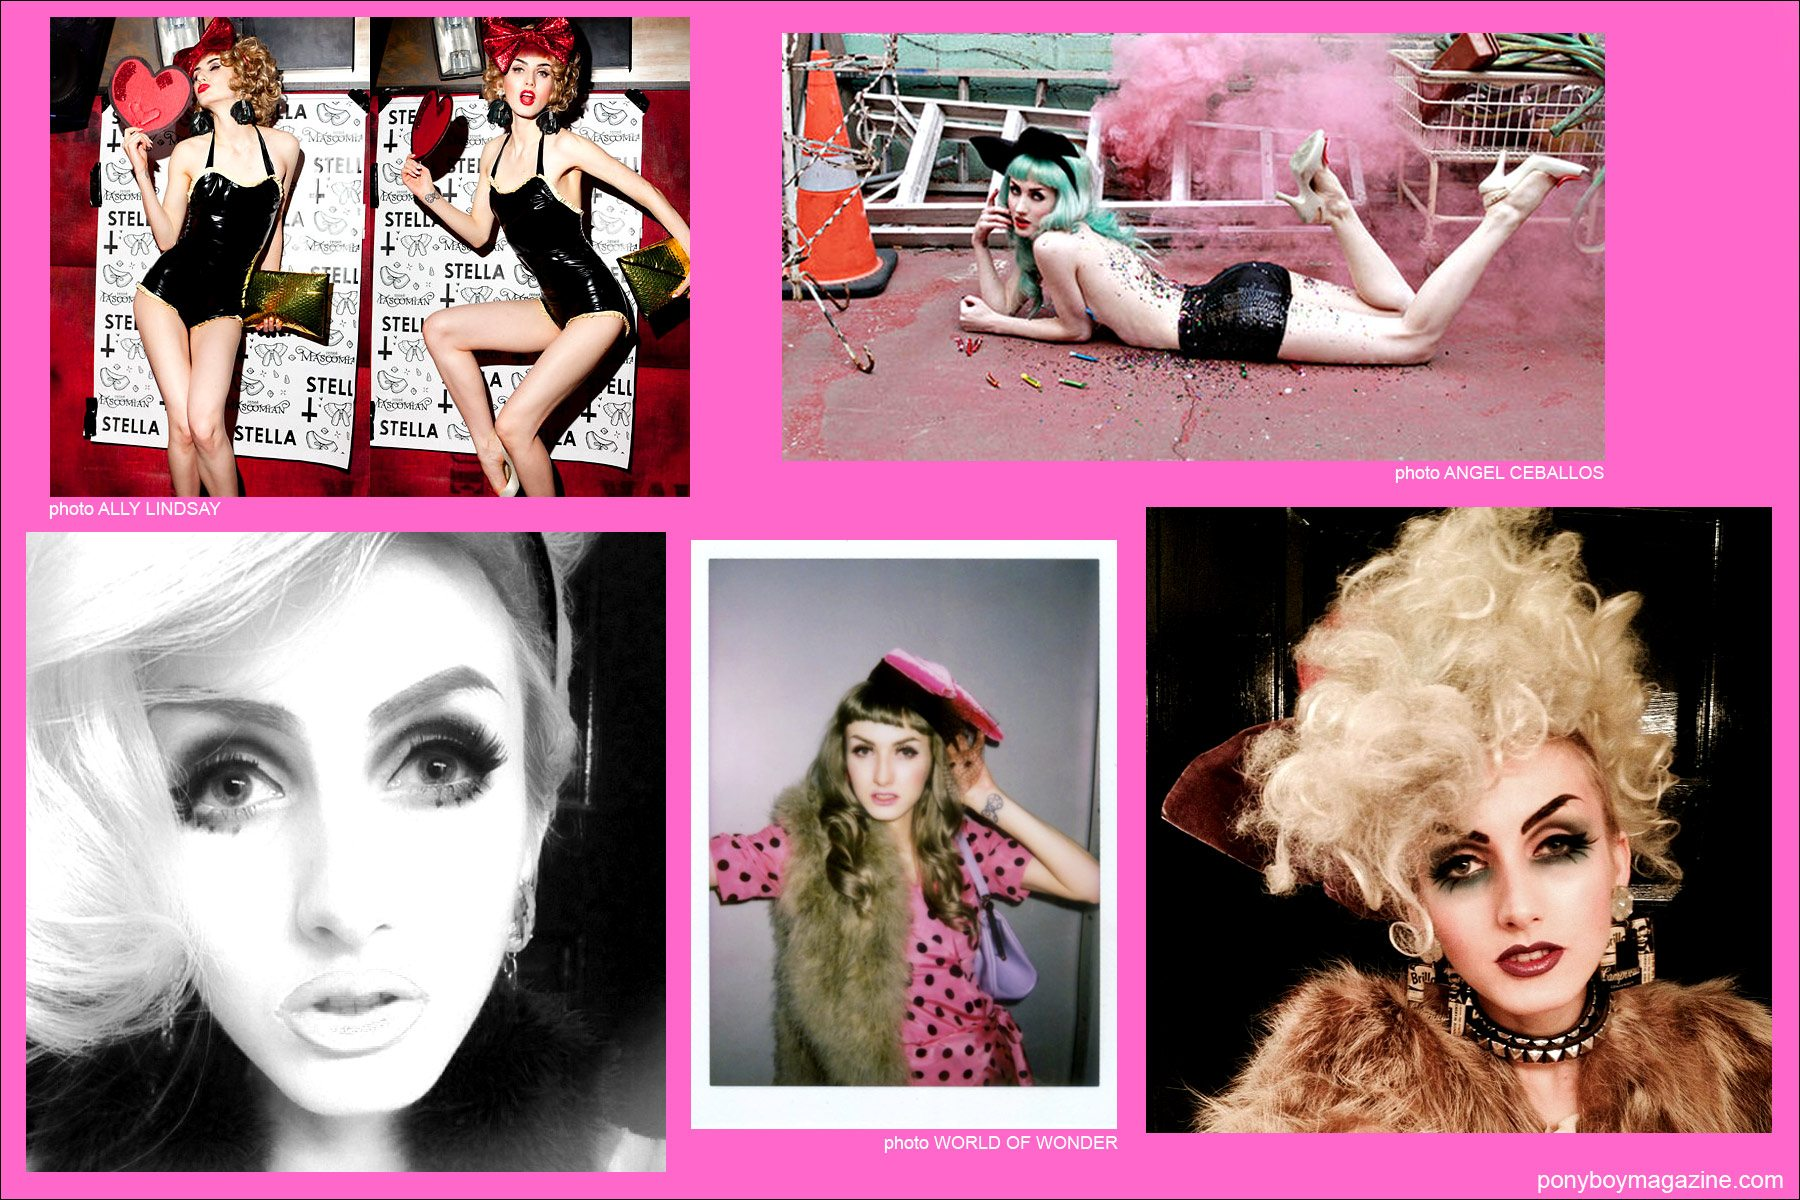 Photos of model and blogger Stella Rose Saint Clair for Ponyboy Magazine New York City.